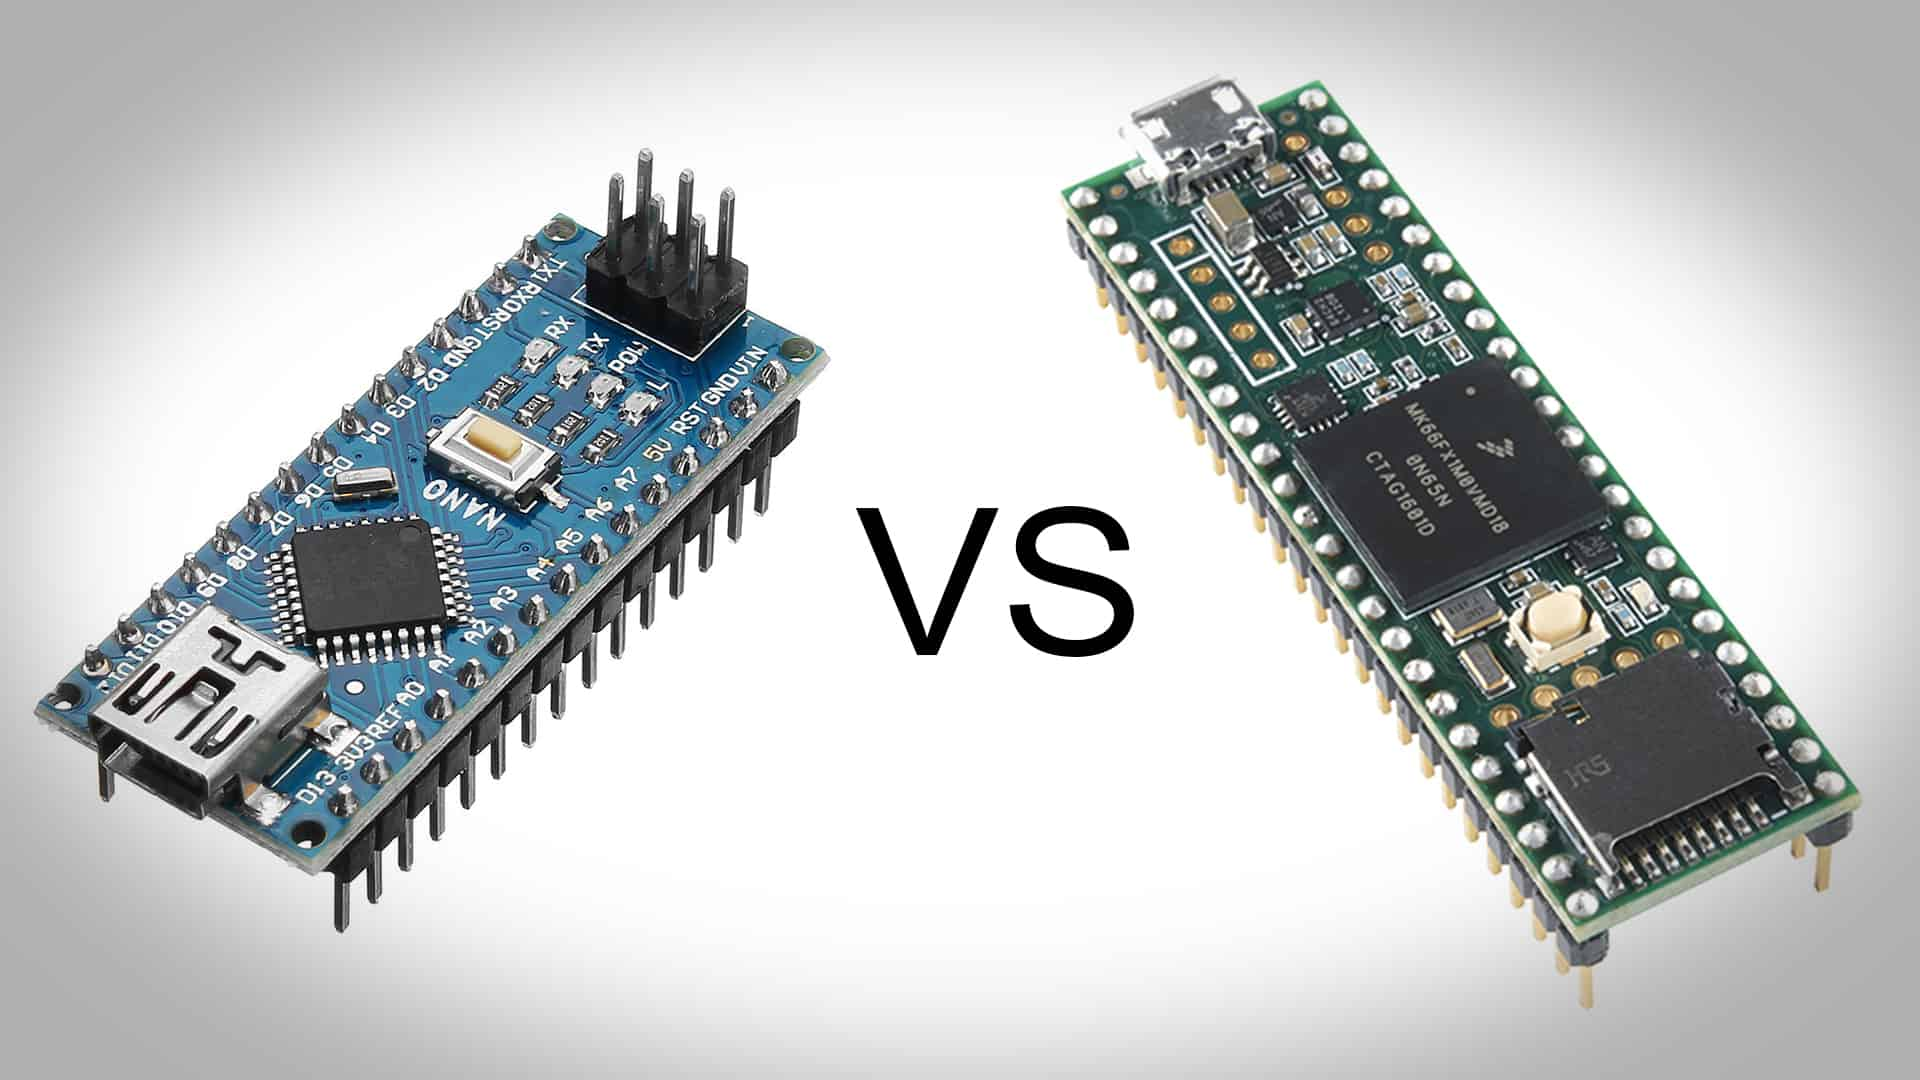 Teensy vs Arduino